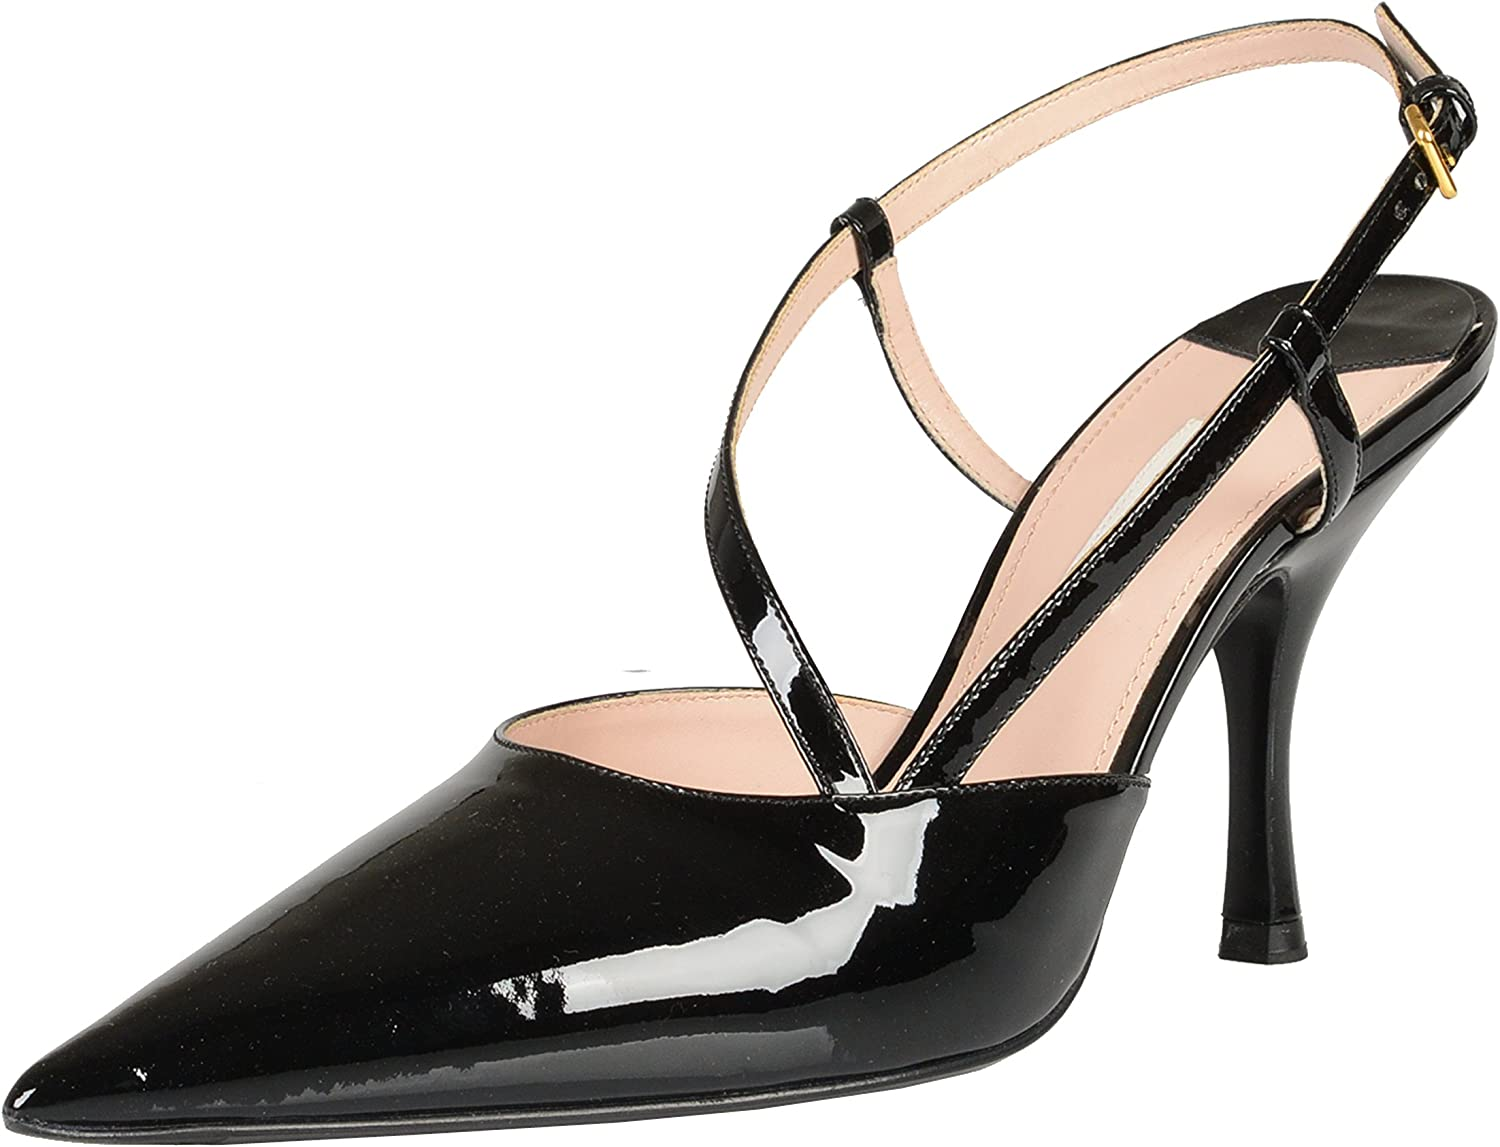 MIU MIU Black Patent Leather Pointy Toe High Heel Pumps shoes US 5 IT 35